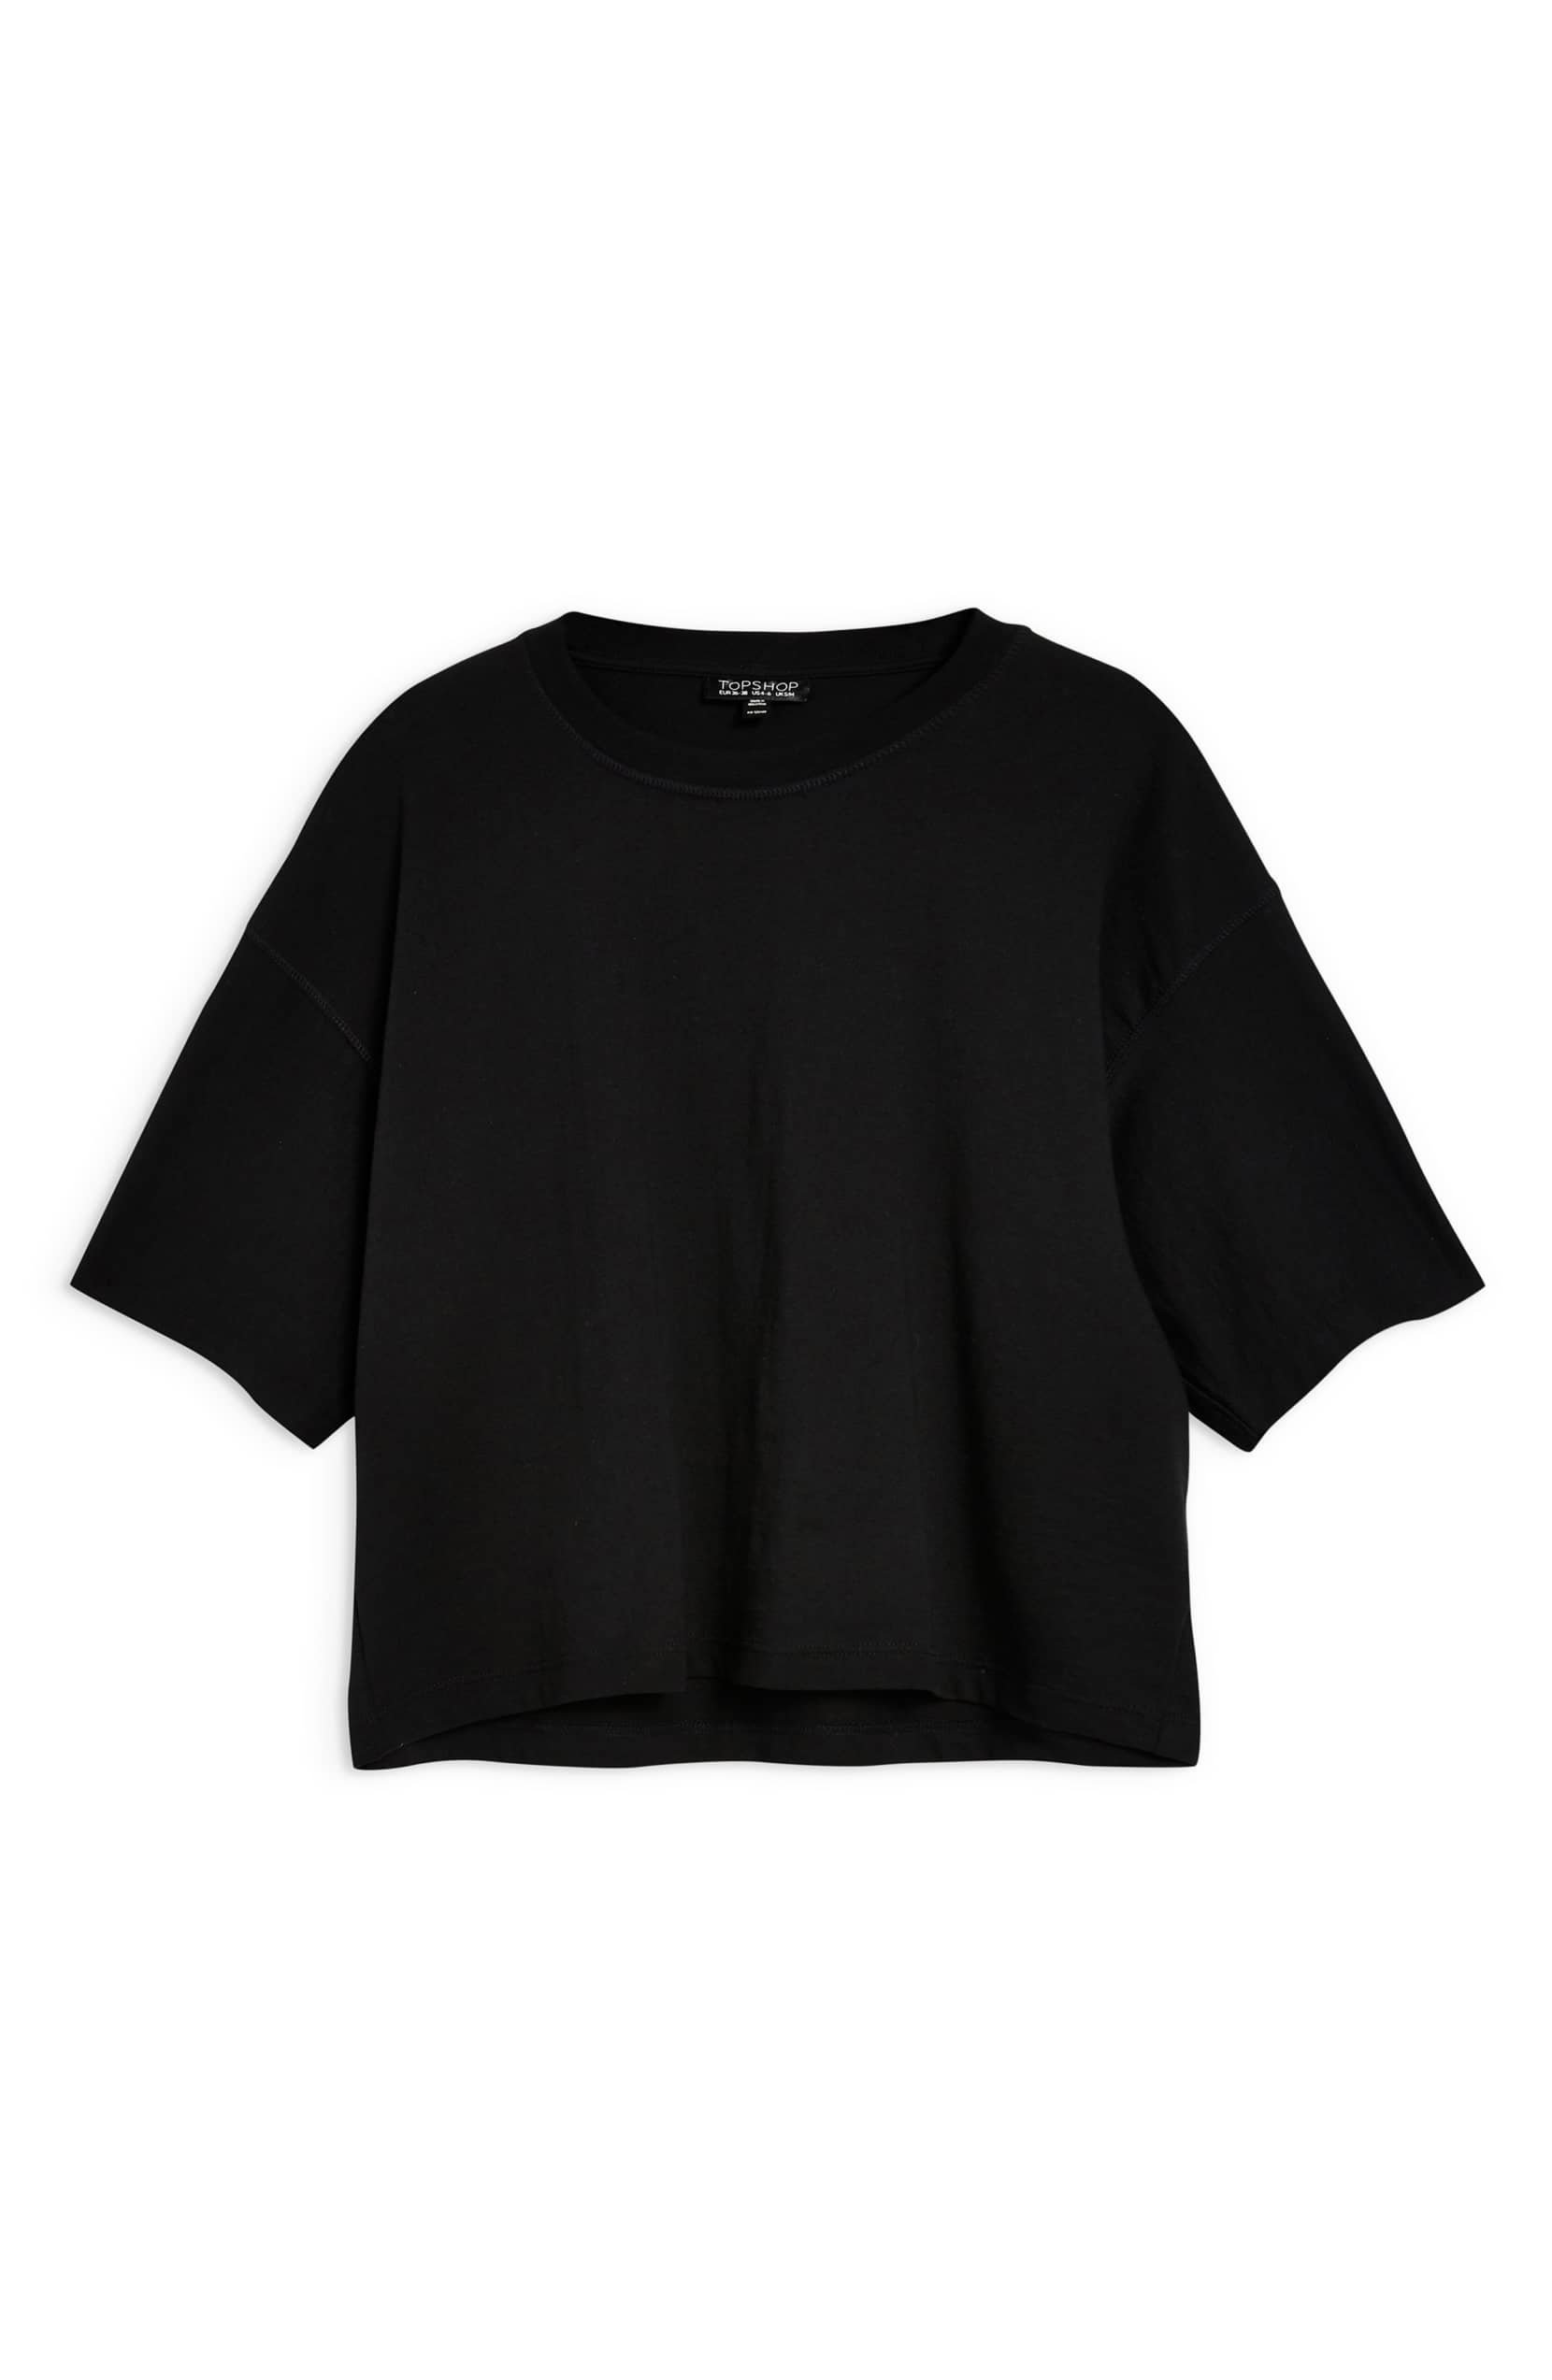 Topshop Boxy Tee | Nordstrom